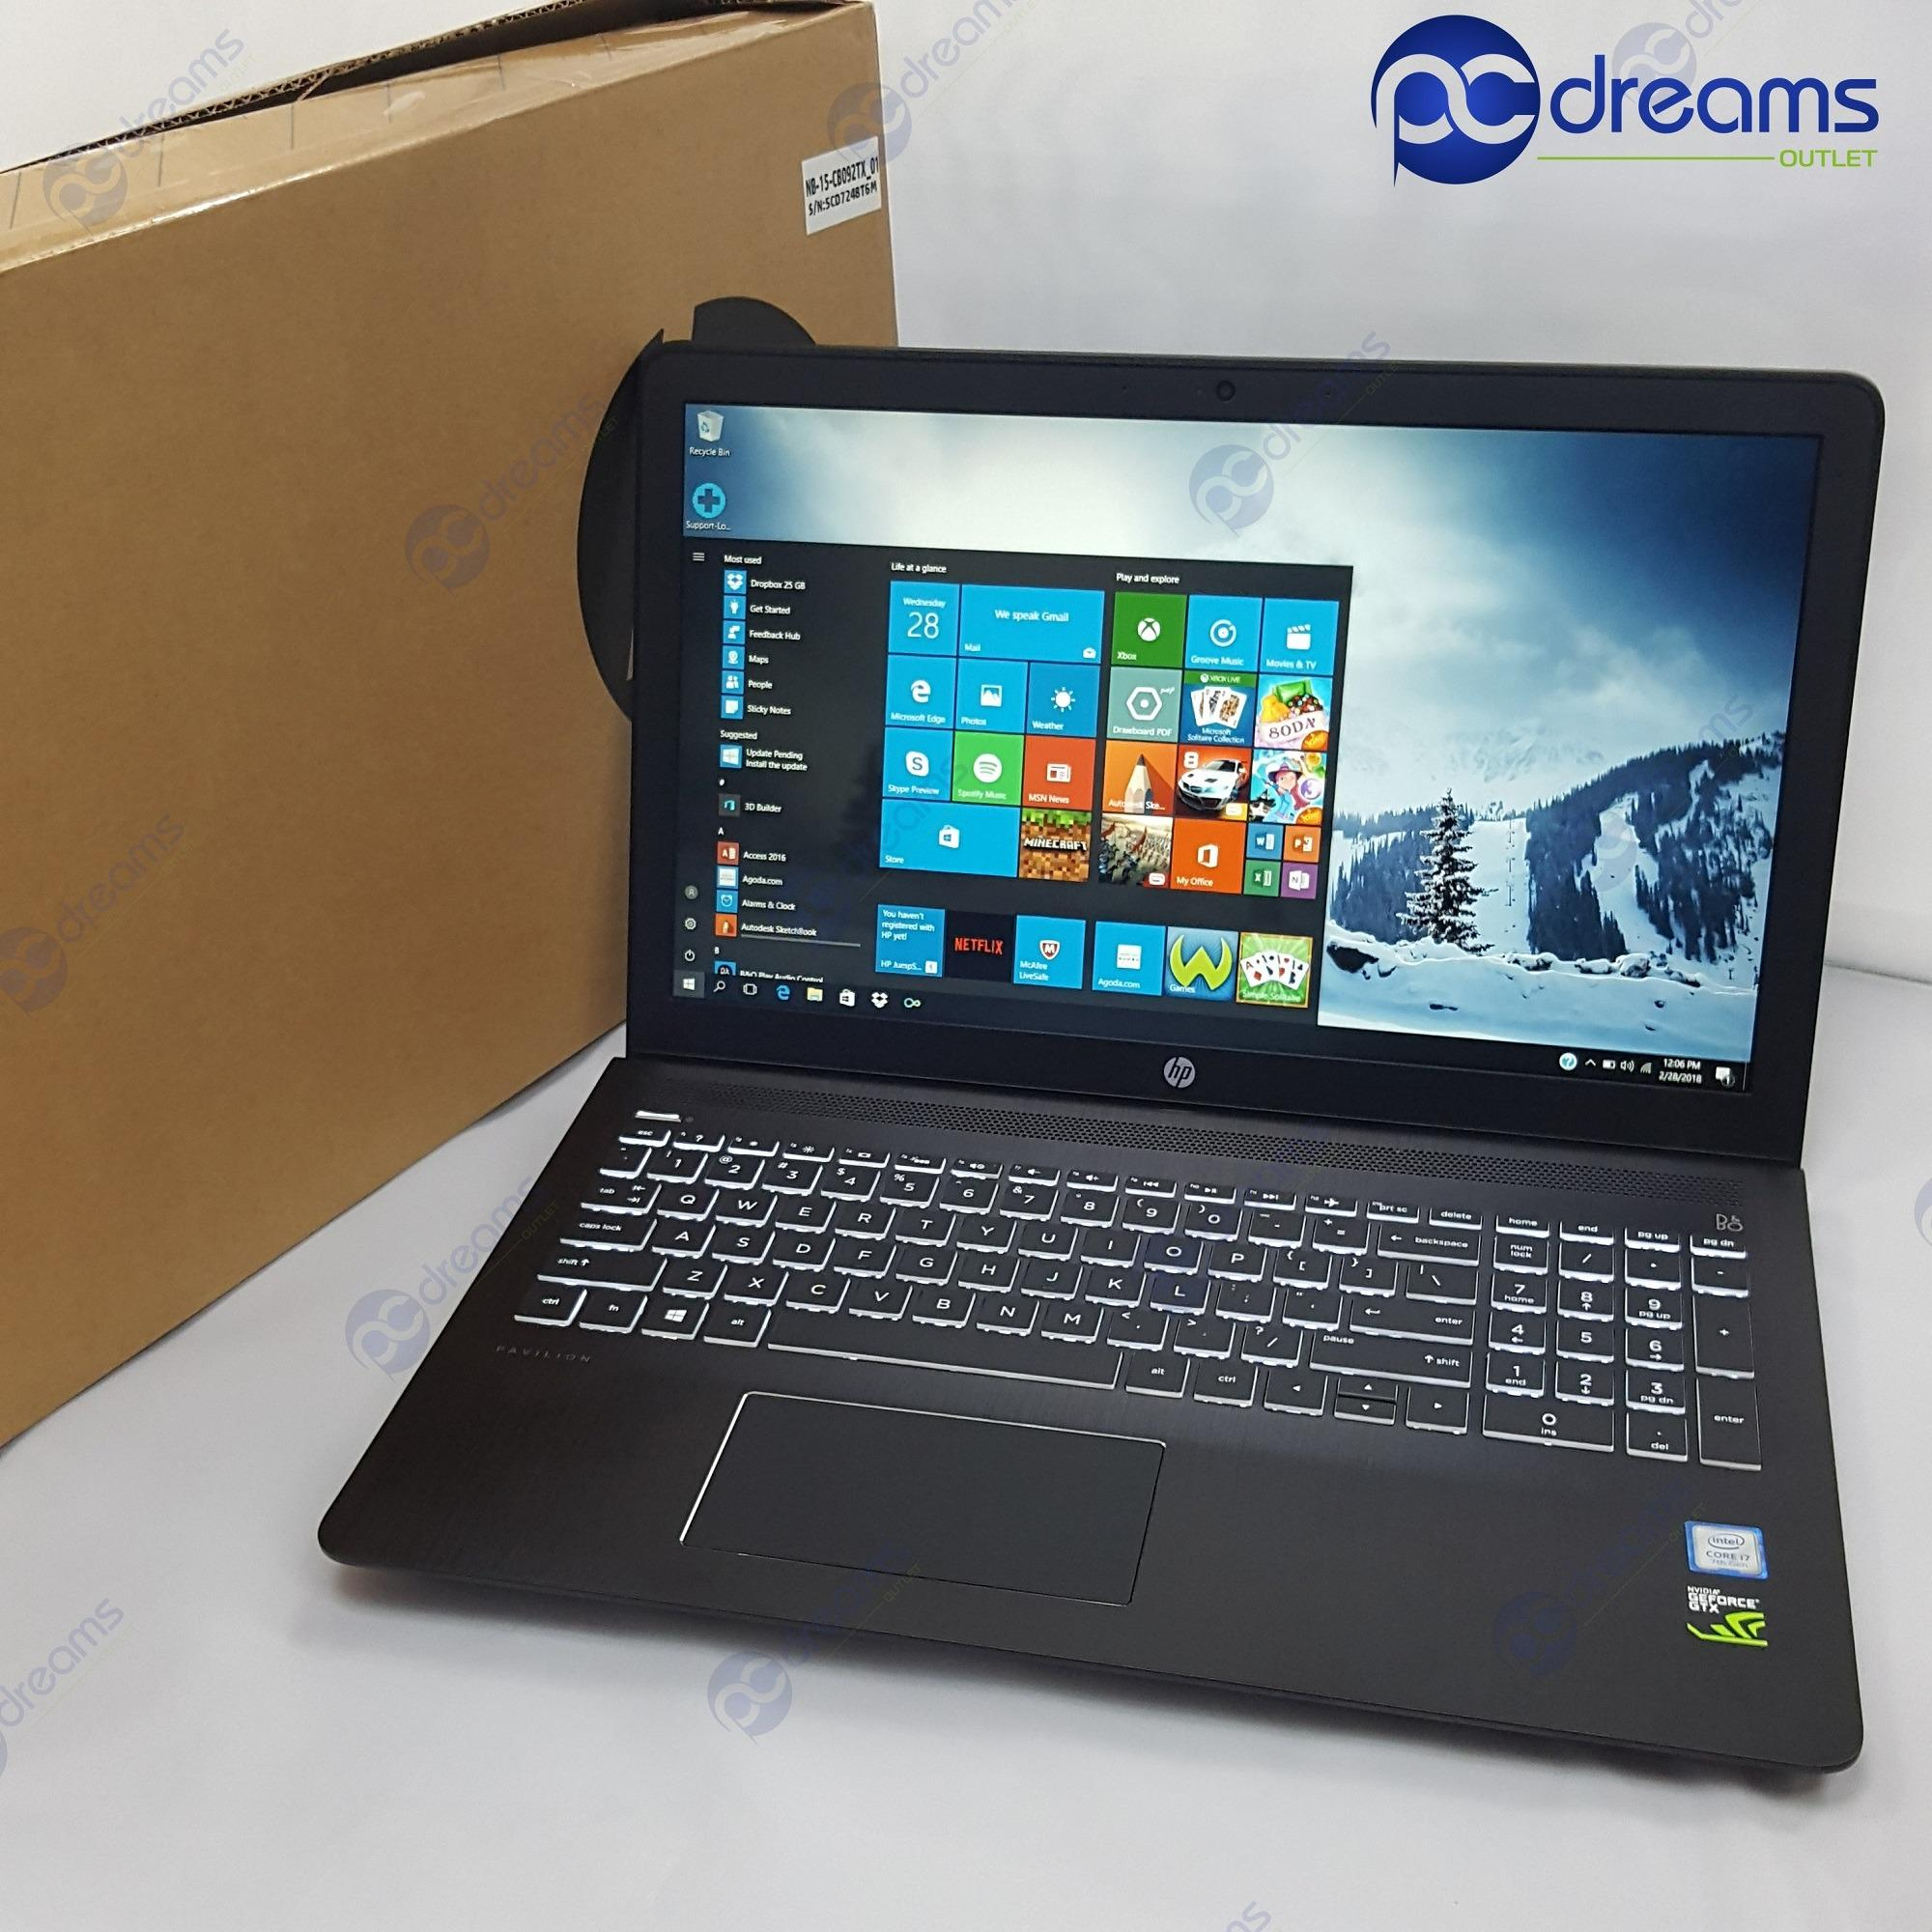 Hp Notebook 14 Am503tu Core I3 6006u 4gb Dos Silver Daftar Update Asus X441ua Wx095d Black Inch Intel 6006 500gb